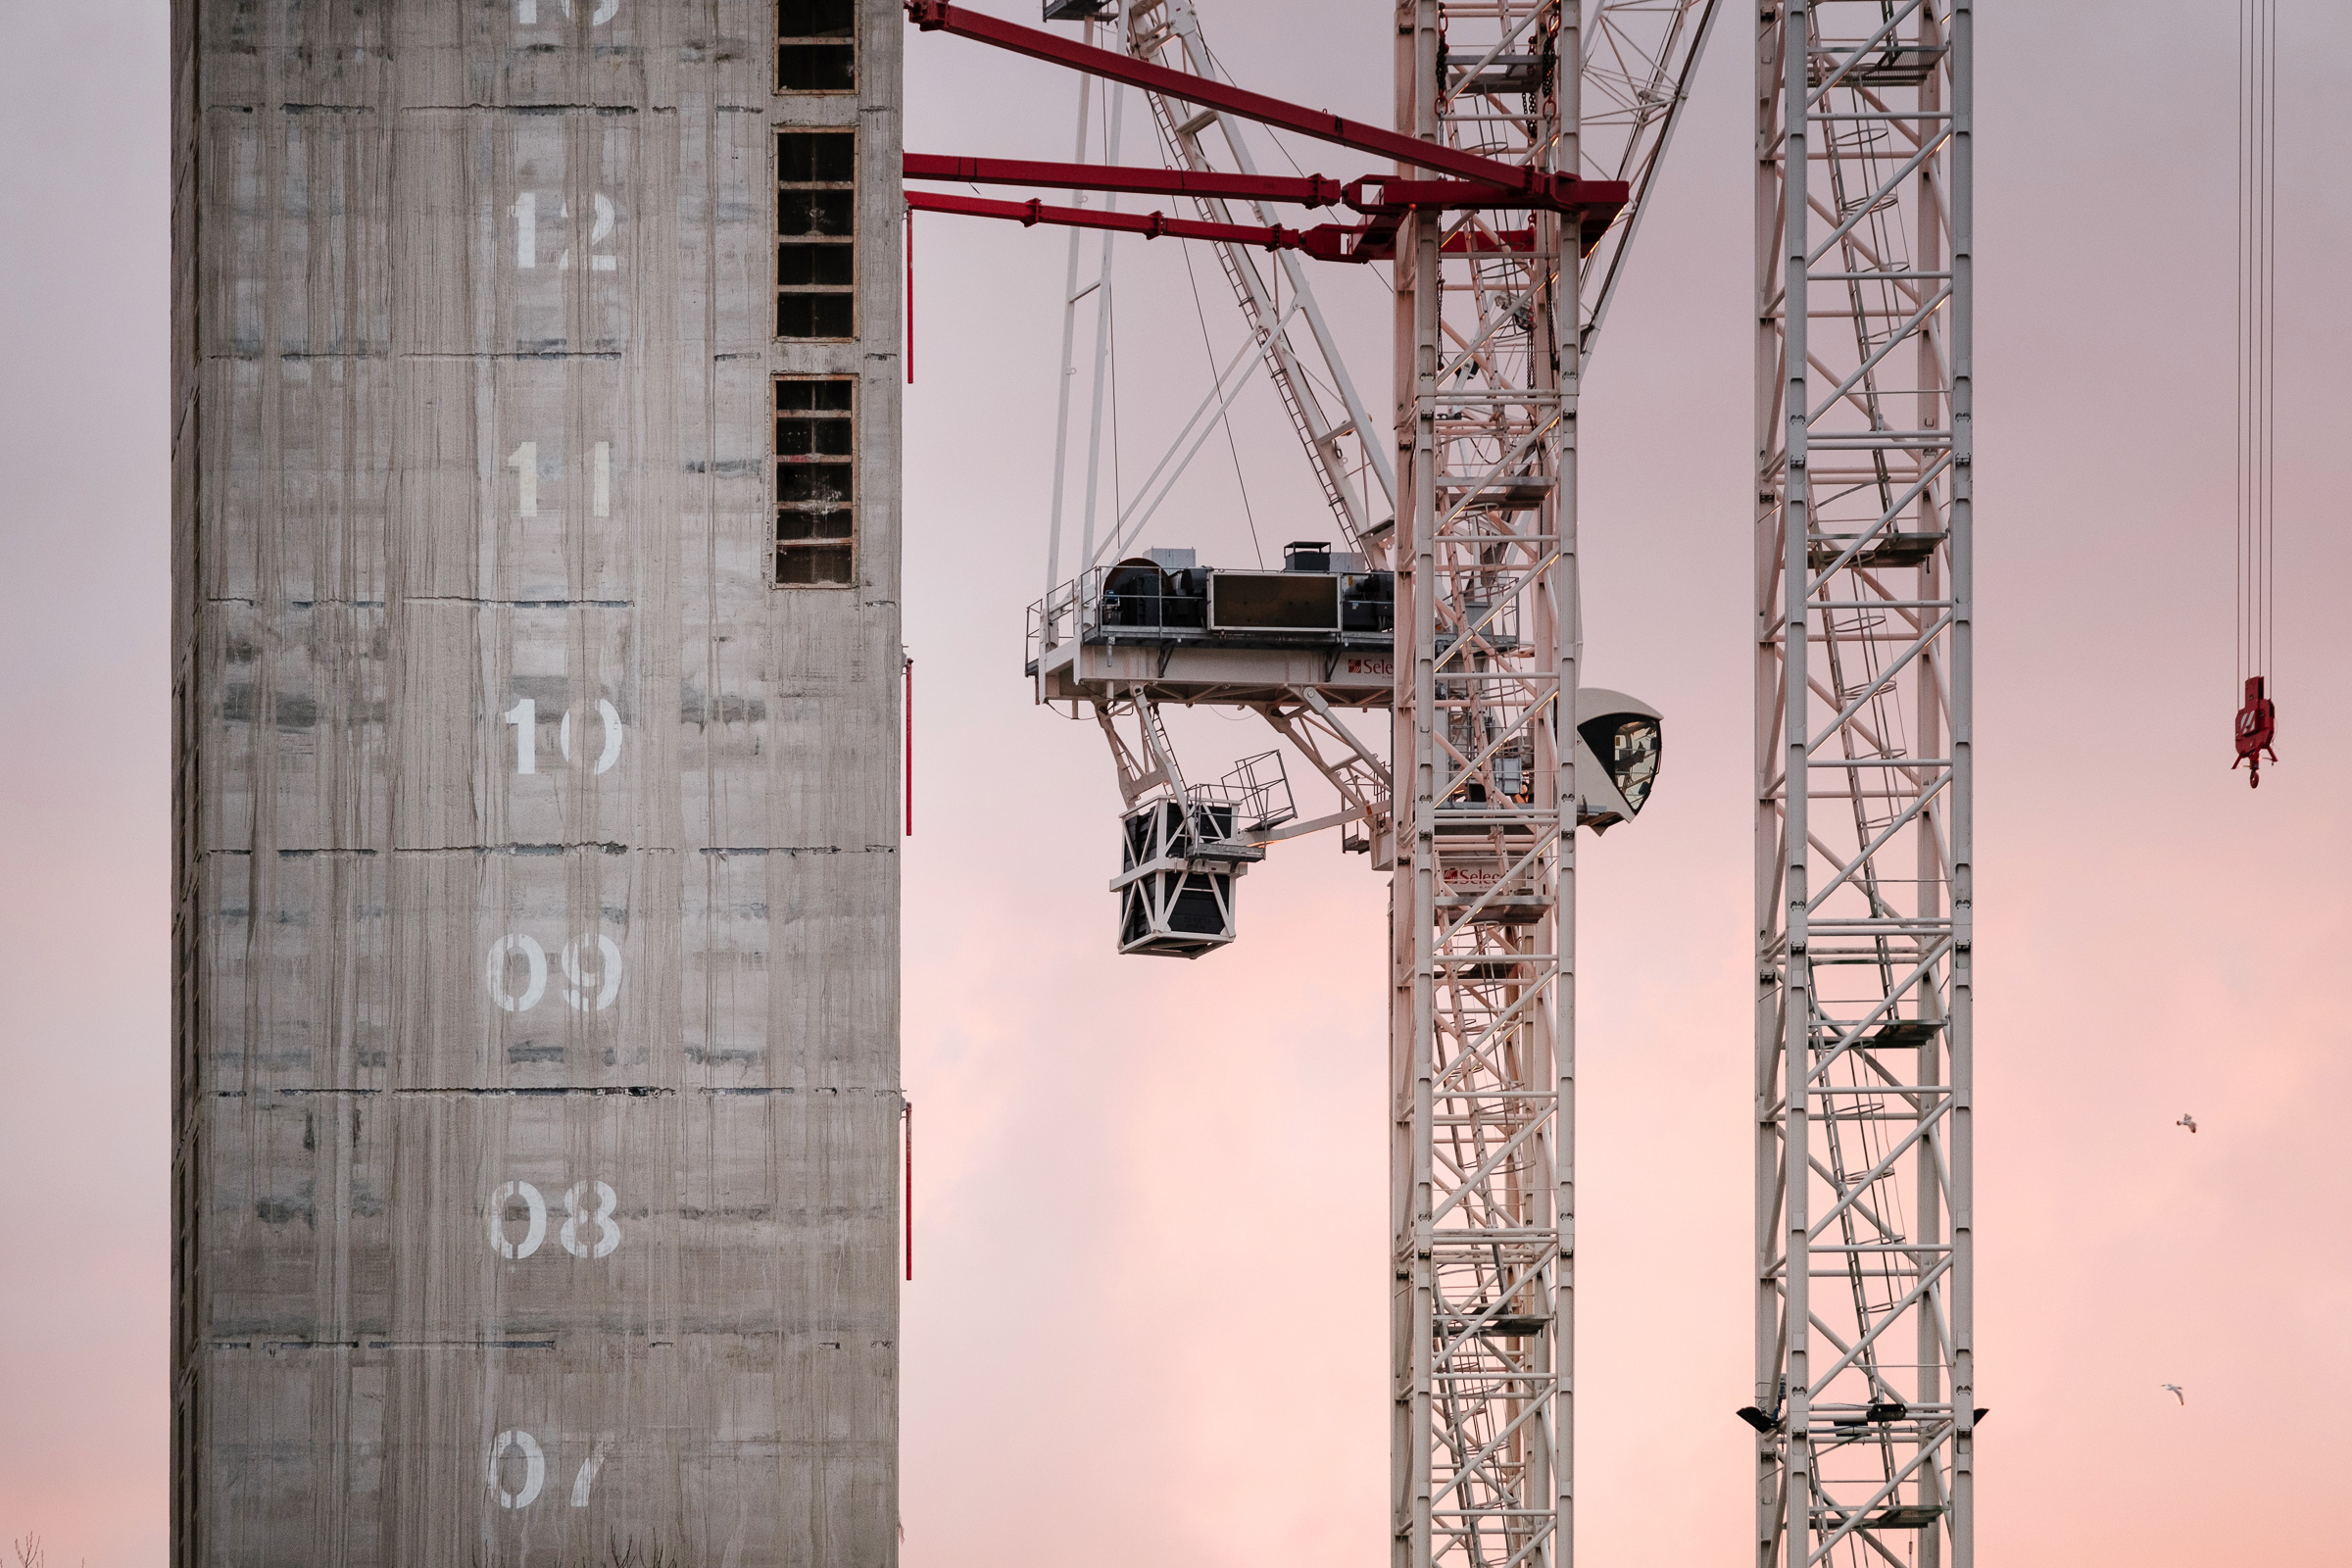 Aerial drone photograph of large crane on construction site